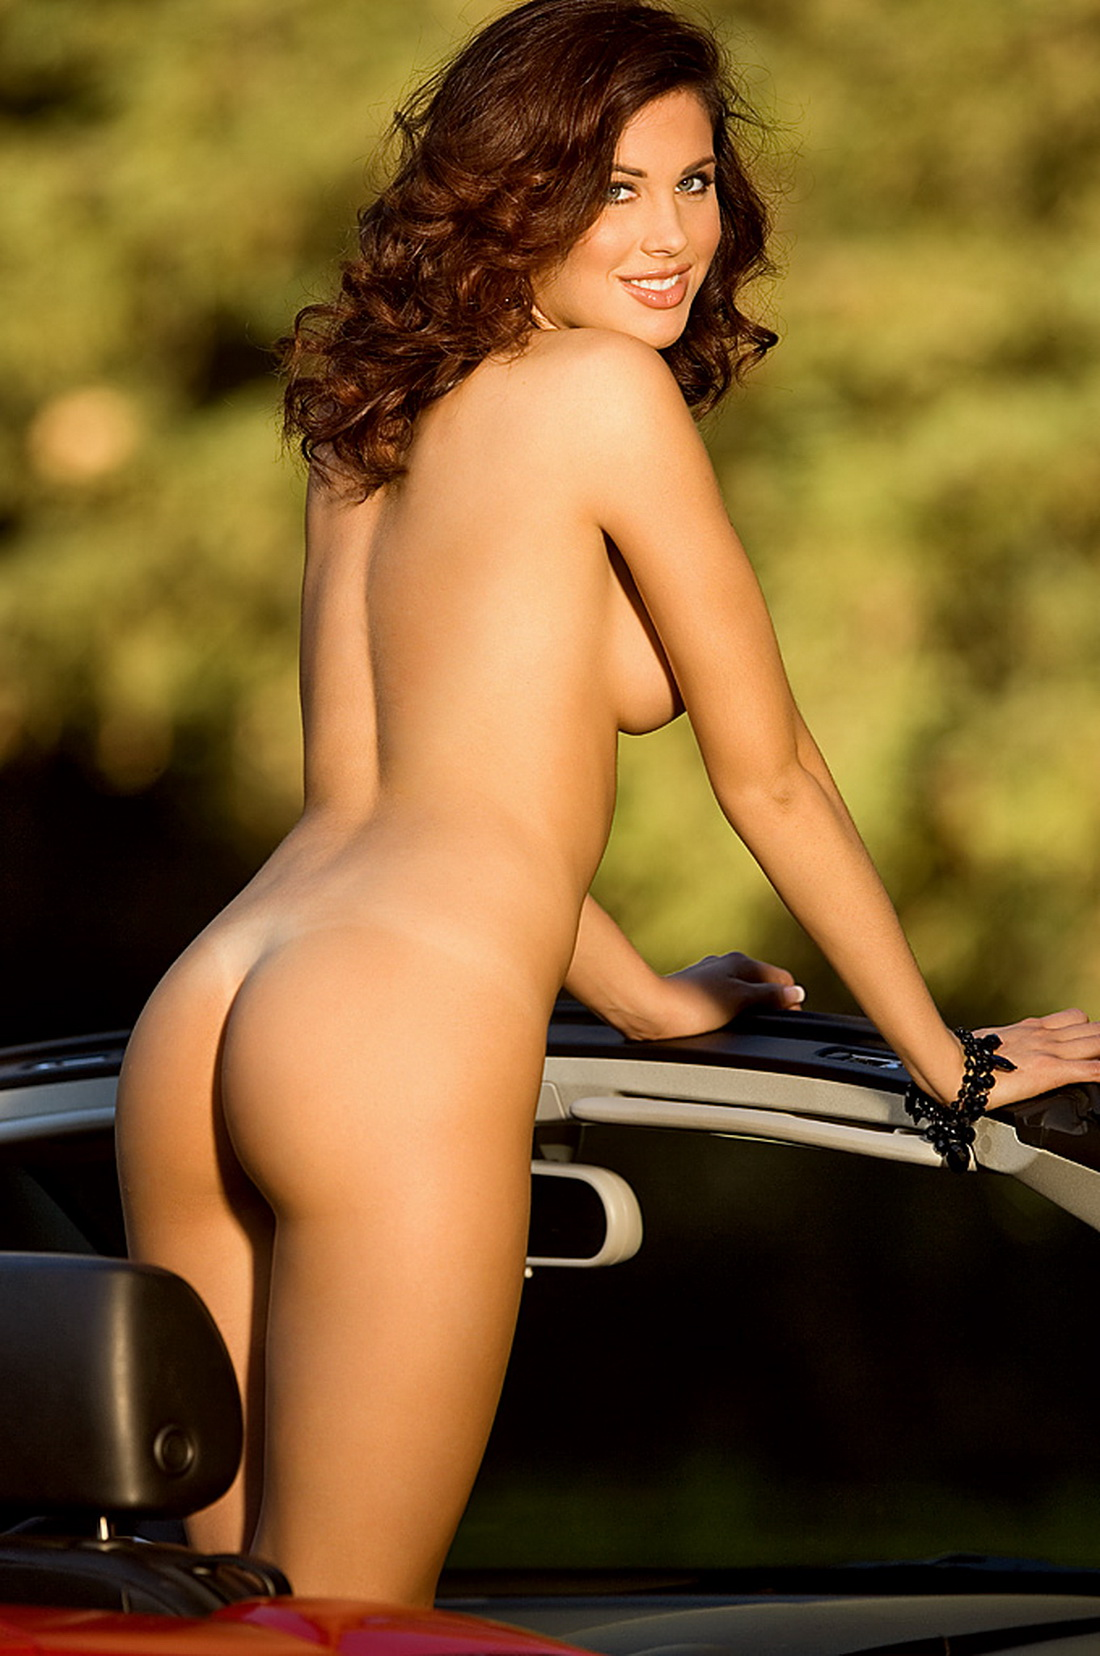 German milf ines quermann shows her nude breasts for playboy